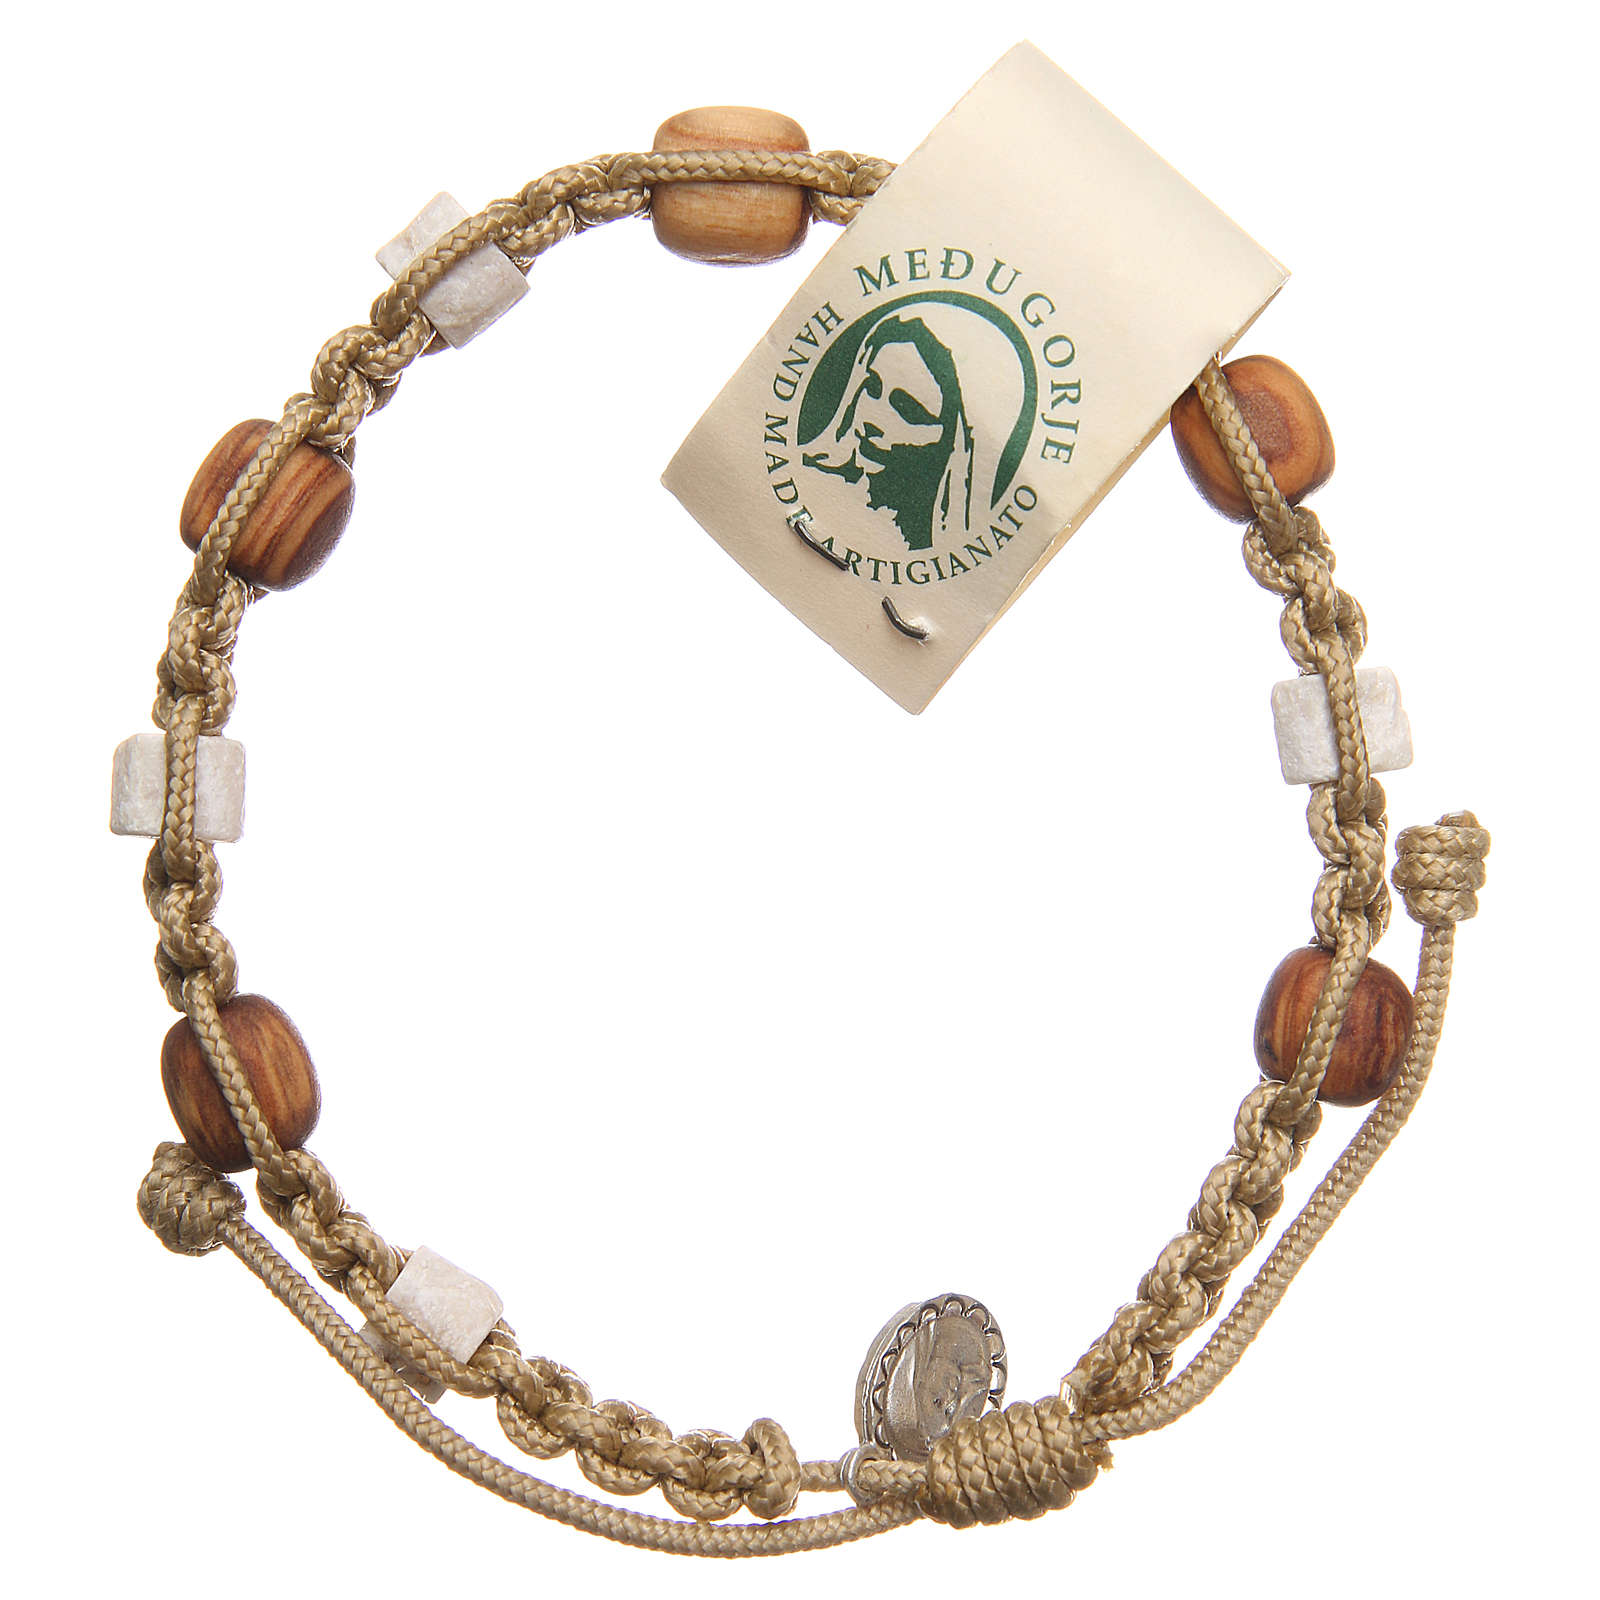 Bracelet in olive wood with grains in white Medjugorje stone and beige cord 4